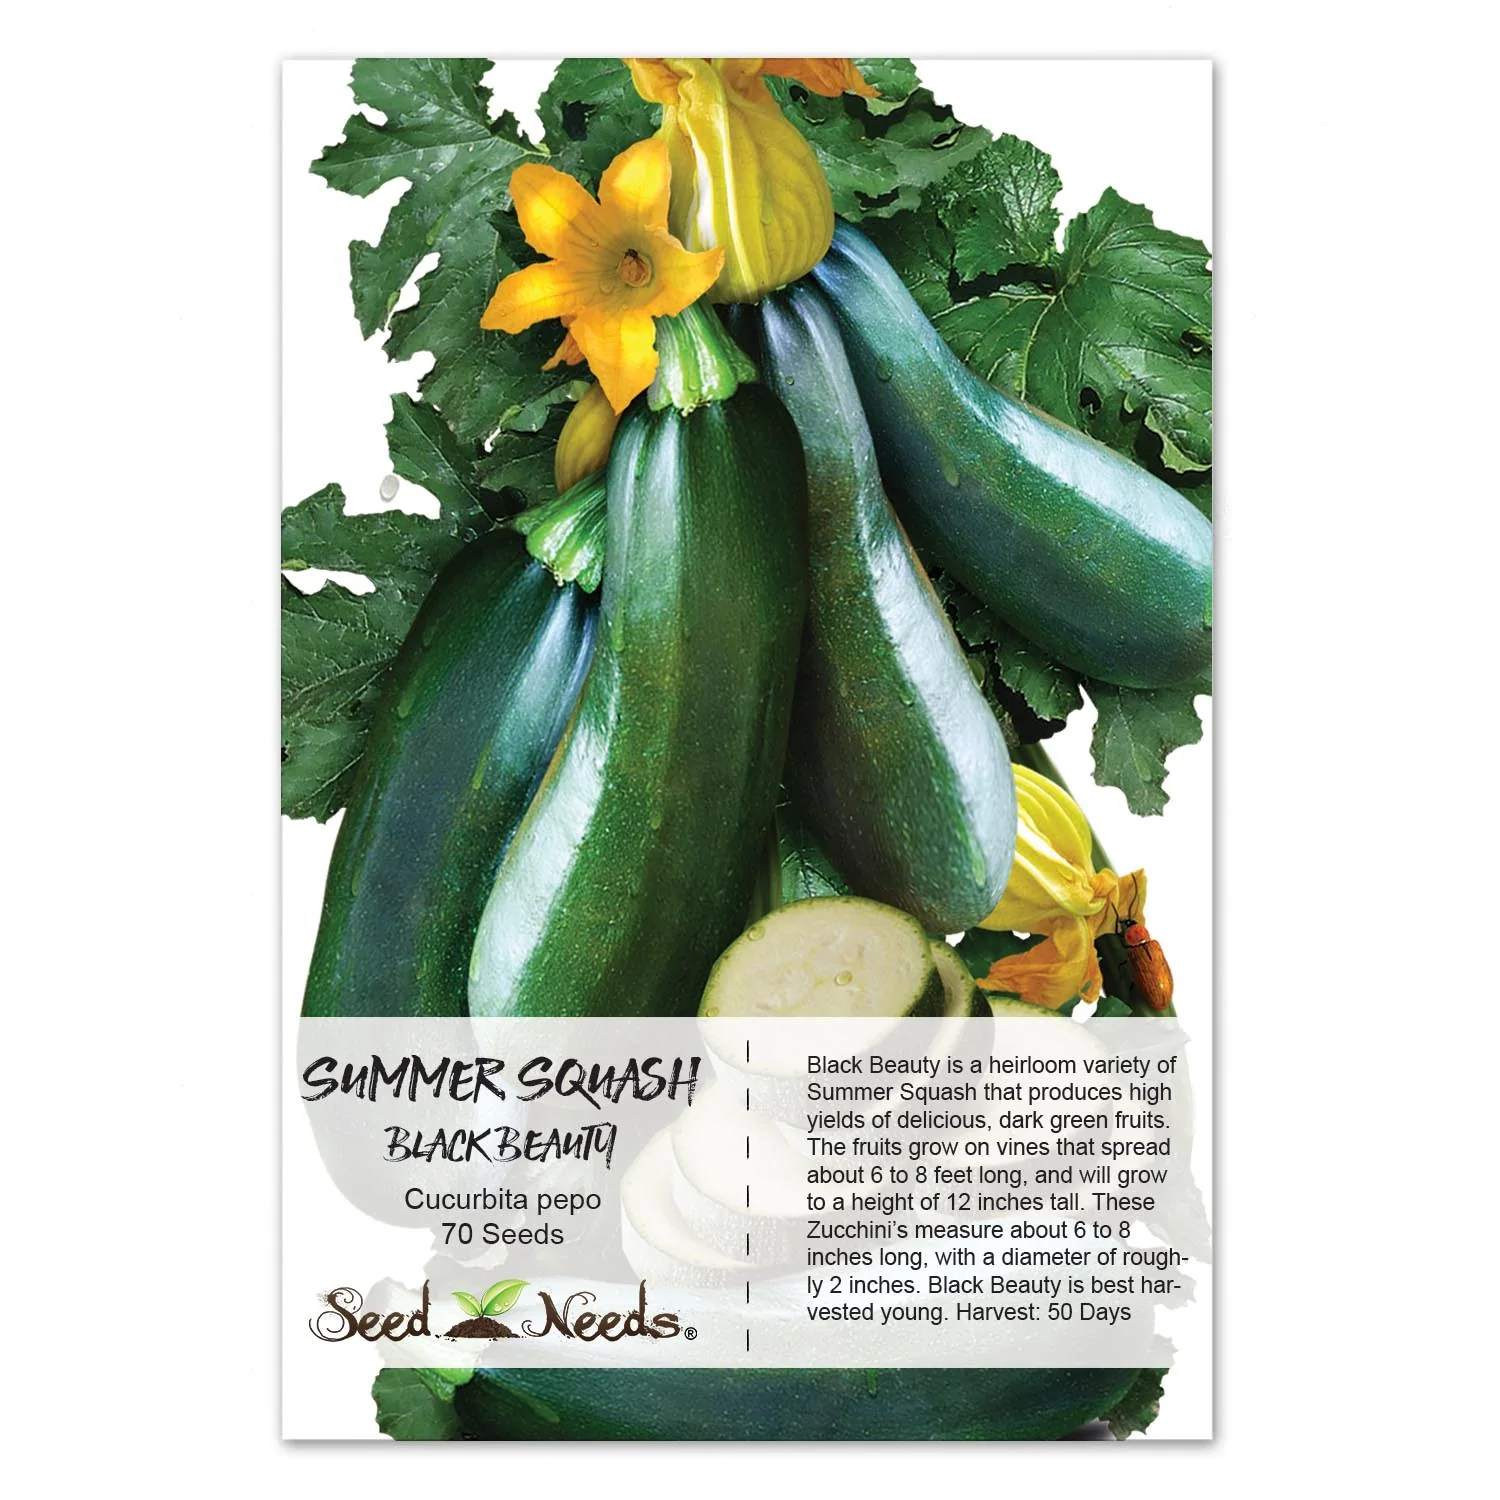 State Black Beauty Zucchini Squash Black Beauty Summer Squash Seed Needs Zucchini Vs Cucumber Nutrition Data Zucchini Vs Cucumber Which Is Healthier houzz 01 Zucchini Vs Cucumber